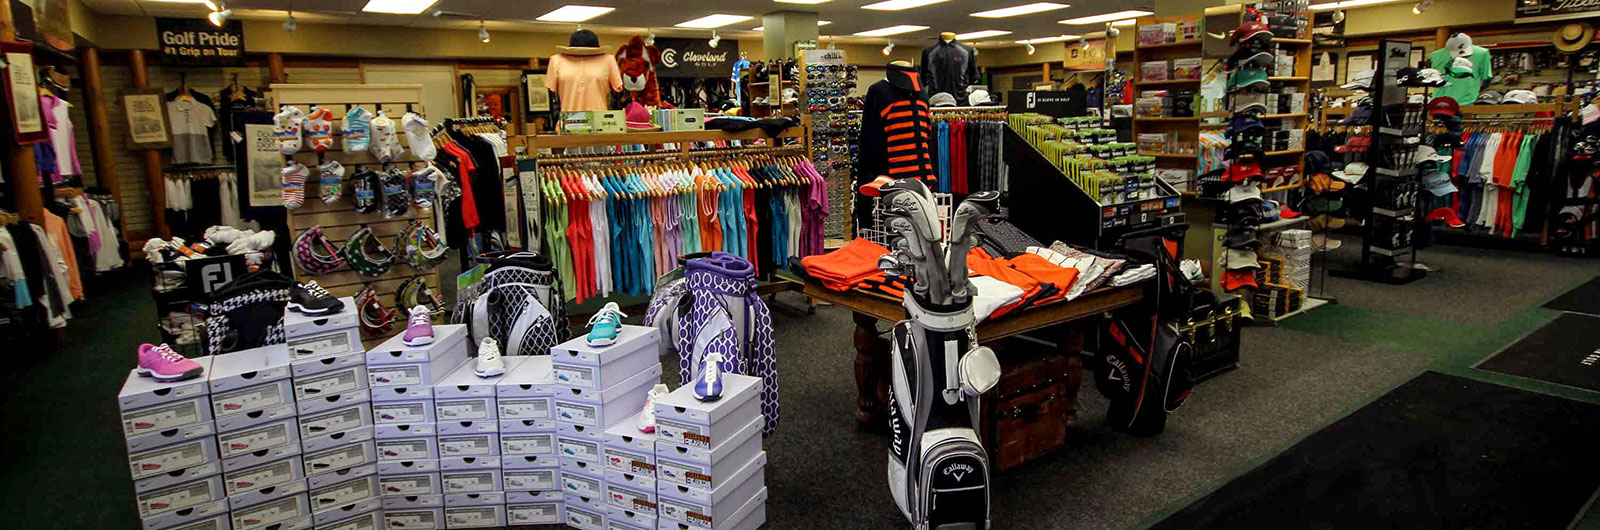 merchandise in the golf shop